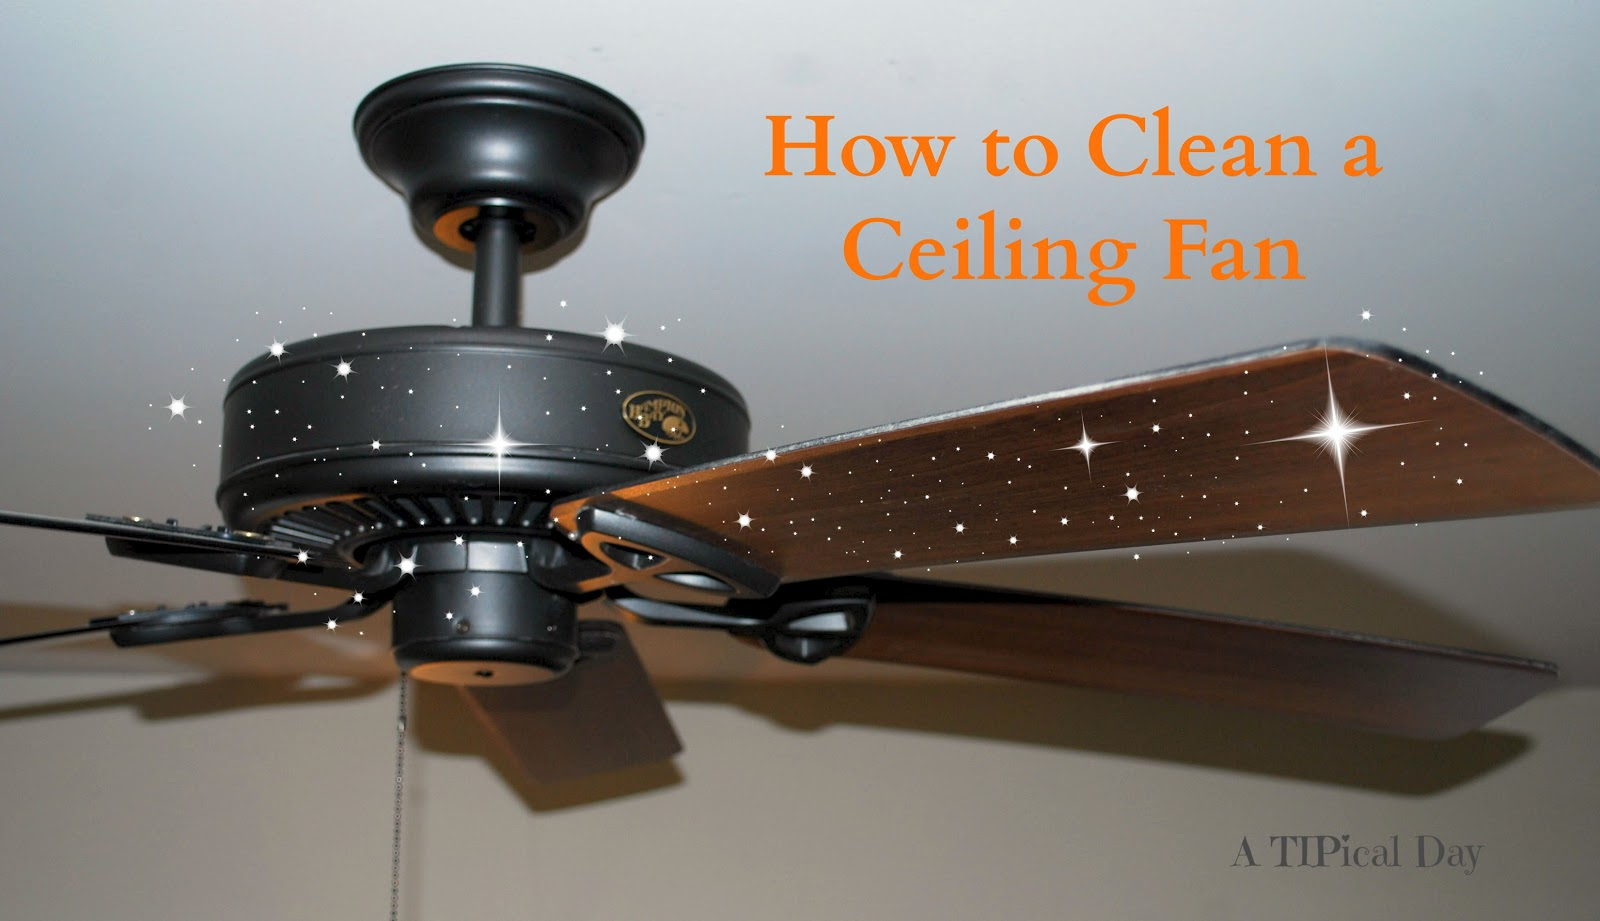 How To Clean Ceiling Fans Step By Step Diy Tutorial